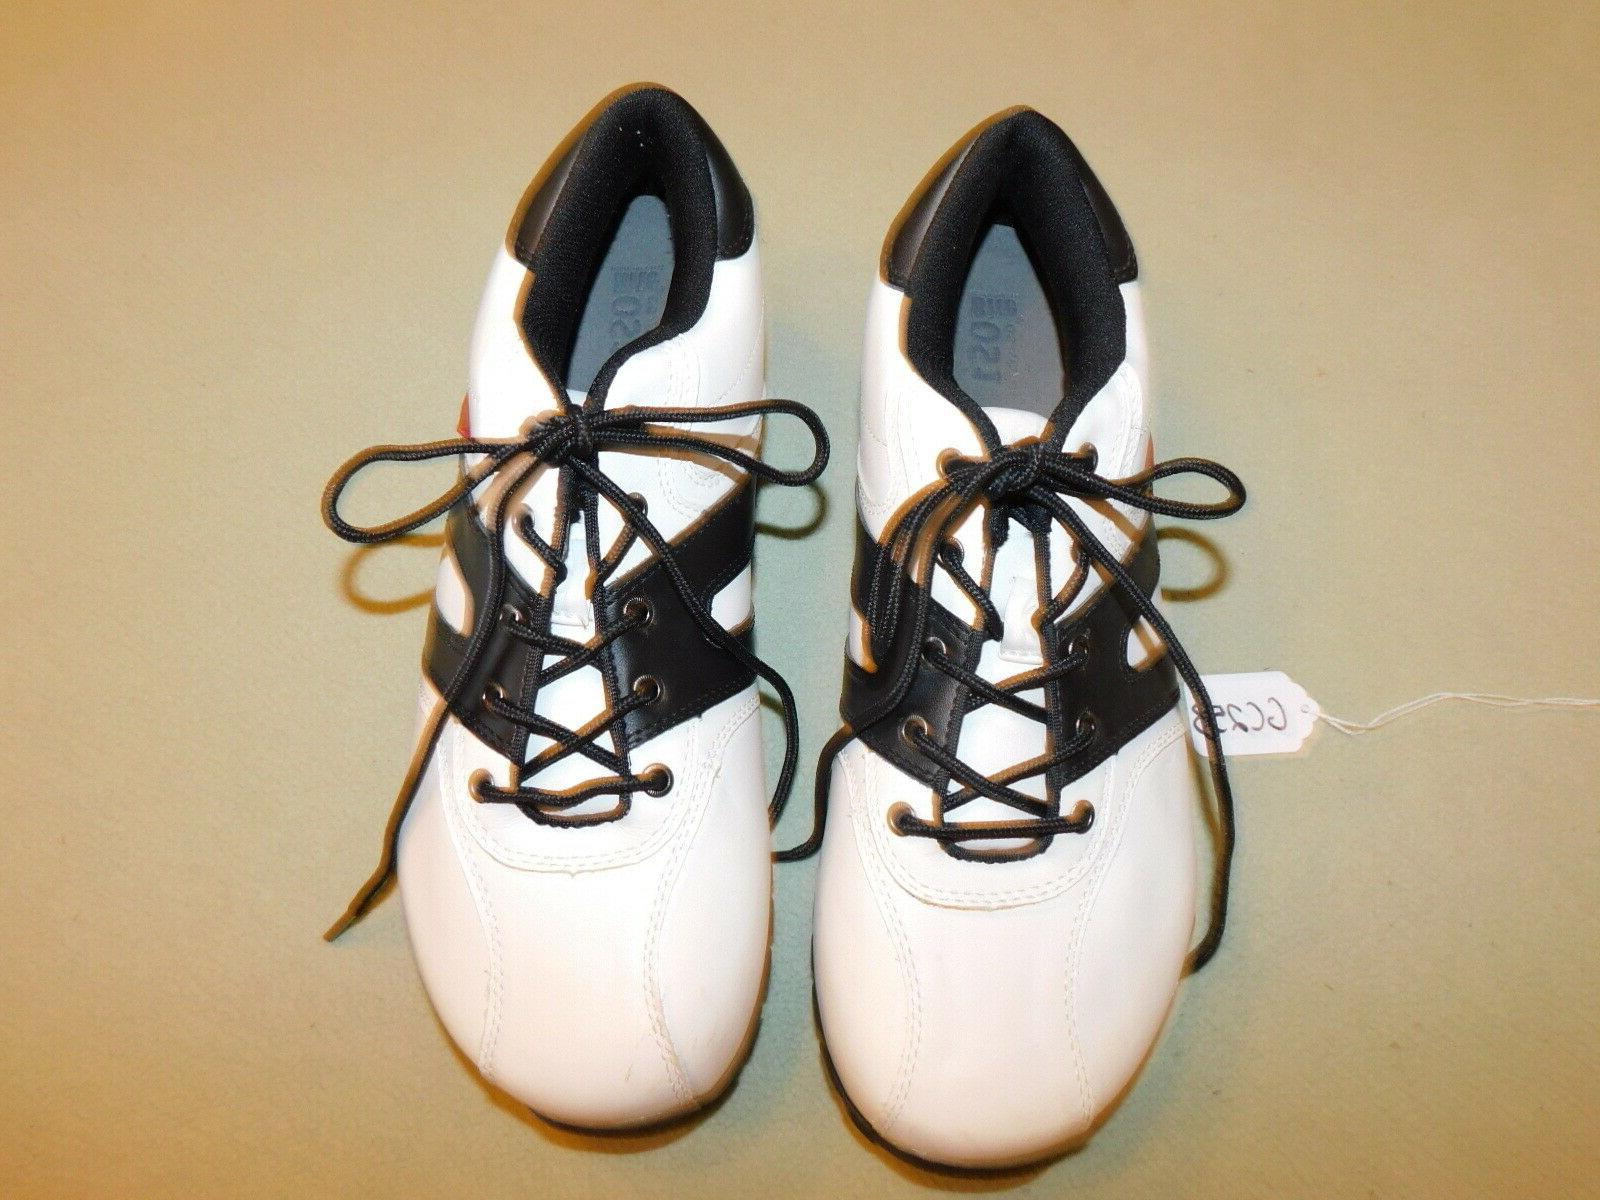 biofit os system golf shoes 2002a size